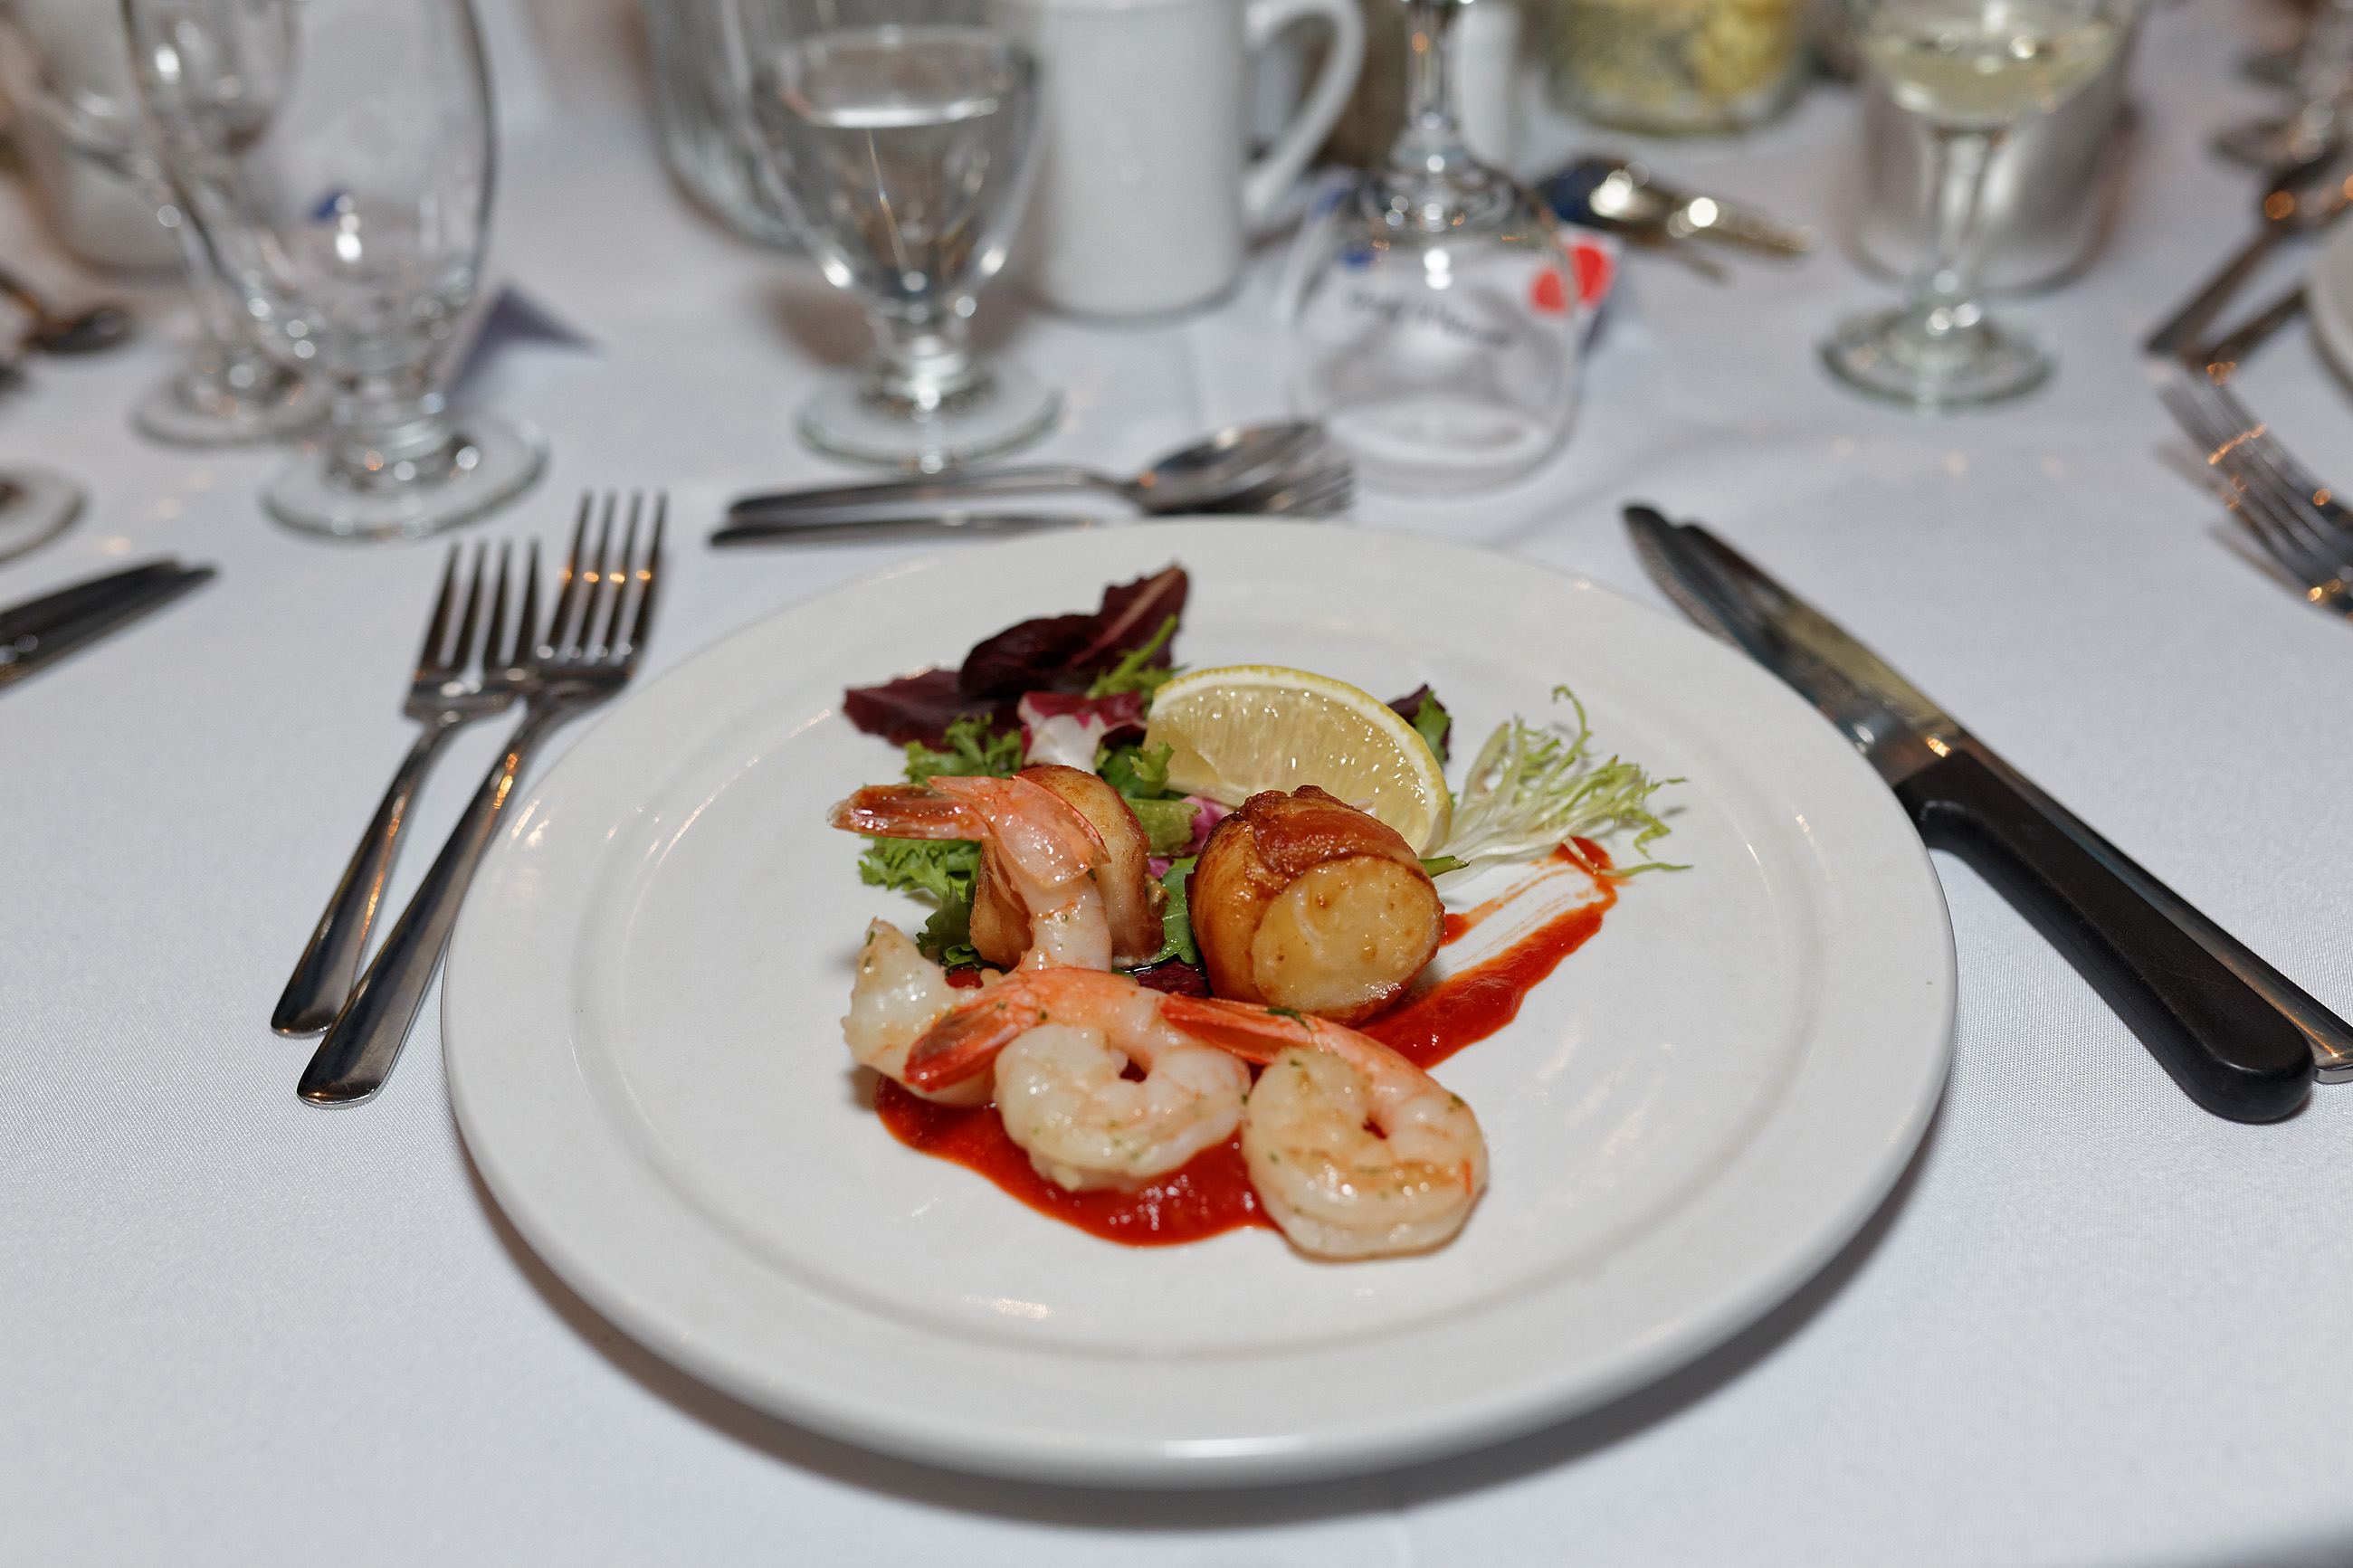 Appetizer of shrimp and scallop, Salad, Salt, Red, Plate, HQ Photo